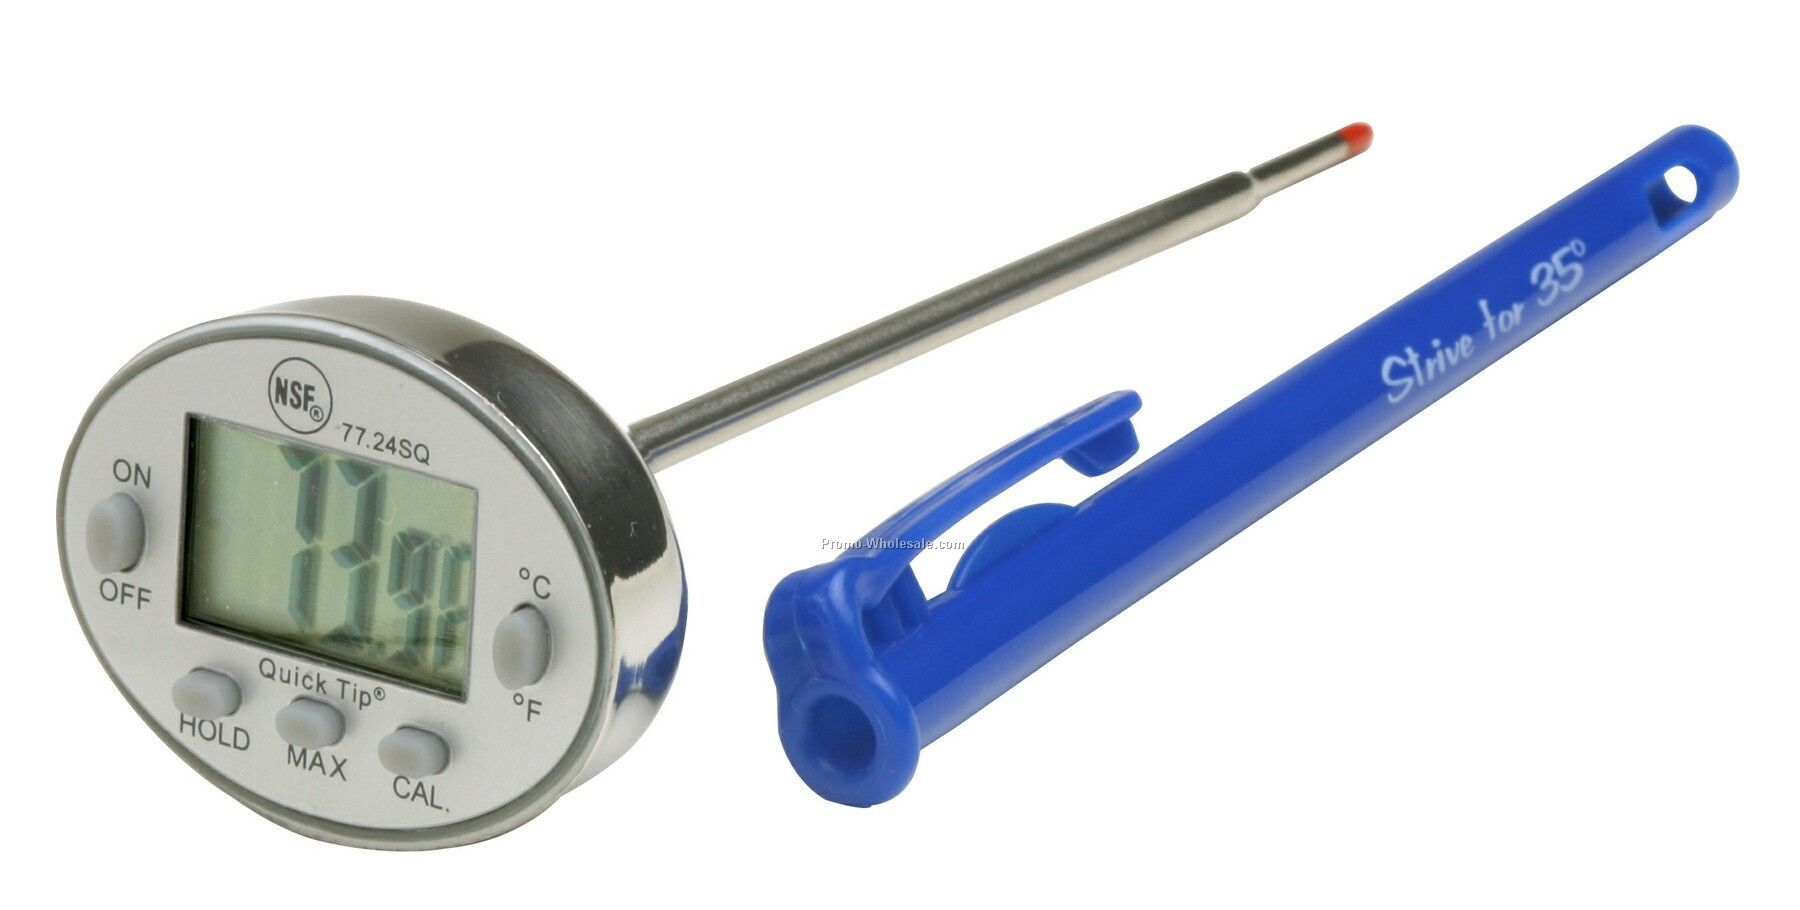 Cal-temp Self Calibration Digital Thermometer